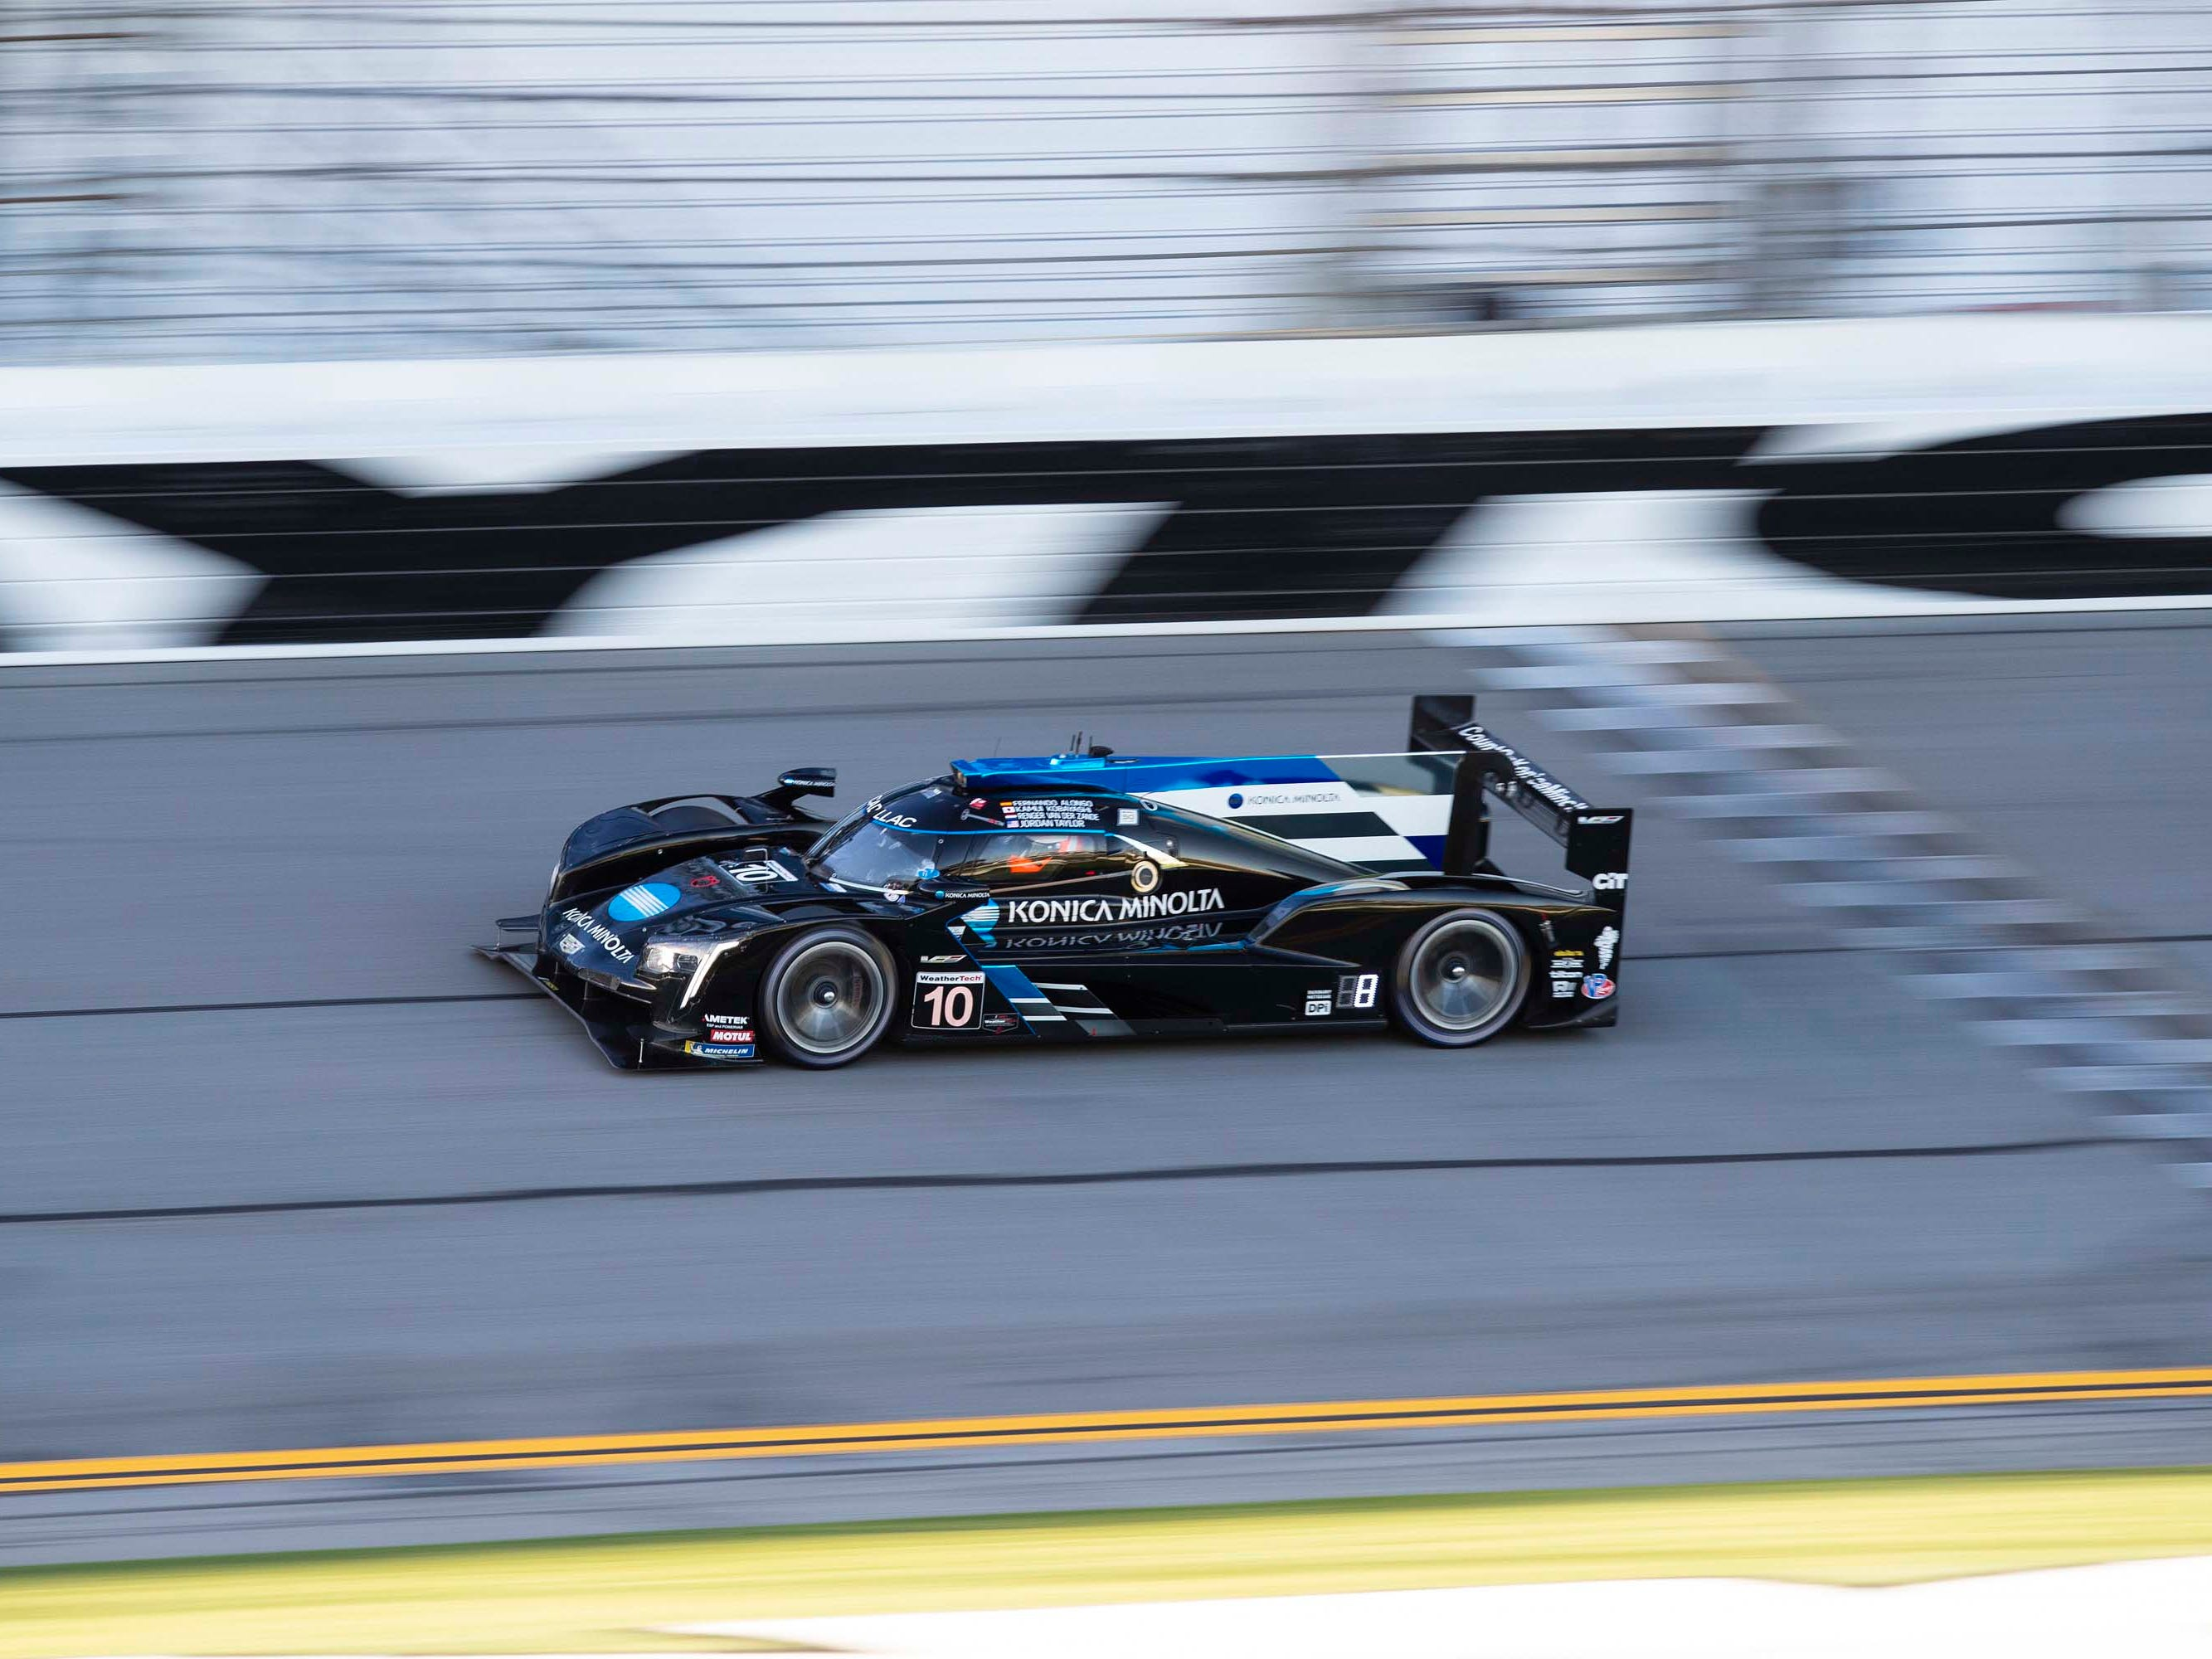 The Cadillac DPi-V.R makes 600 horsepower from its ground-pounding, 6.2-liter V-8 engine. Here it flashes by on the Daytona Speedway straight at the Rolex 24 Hours.